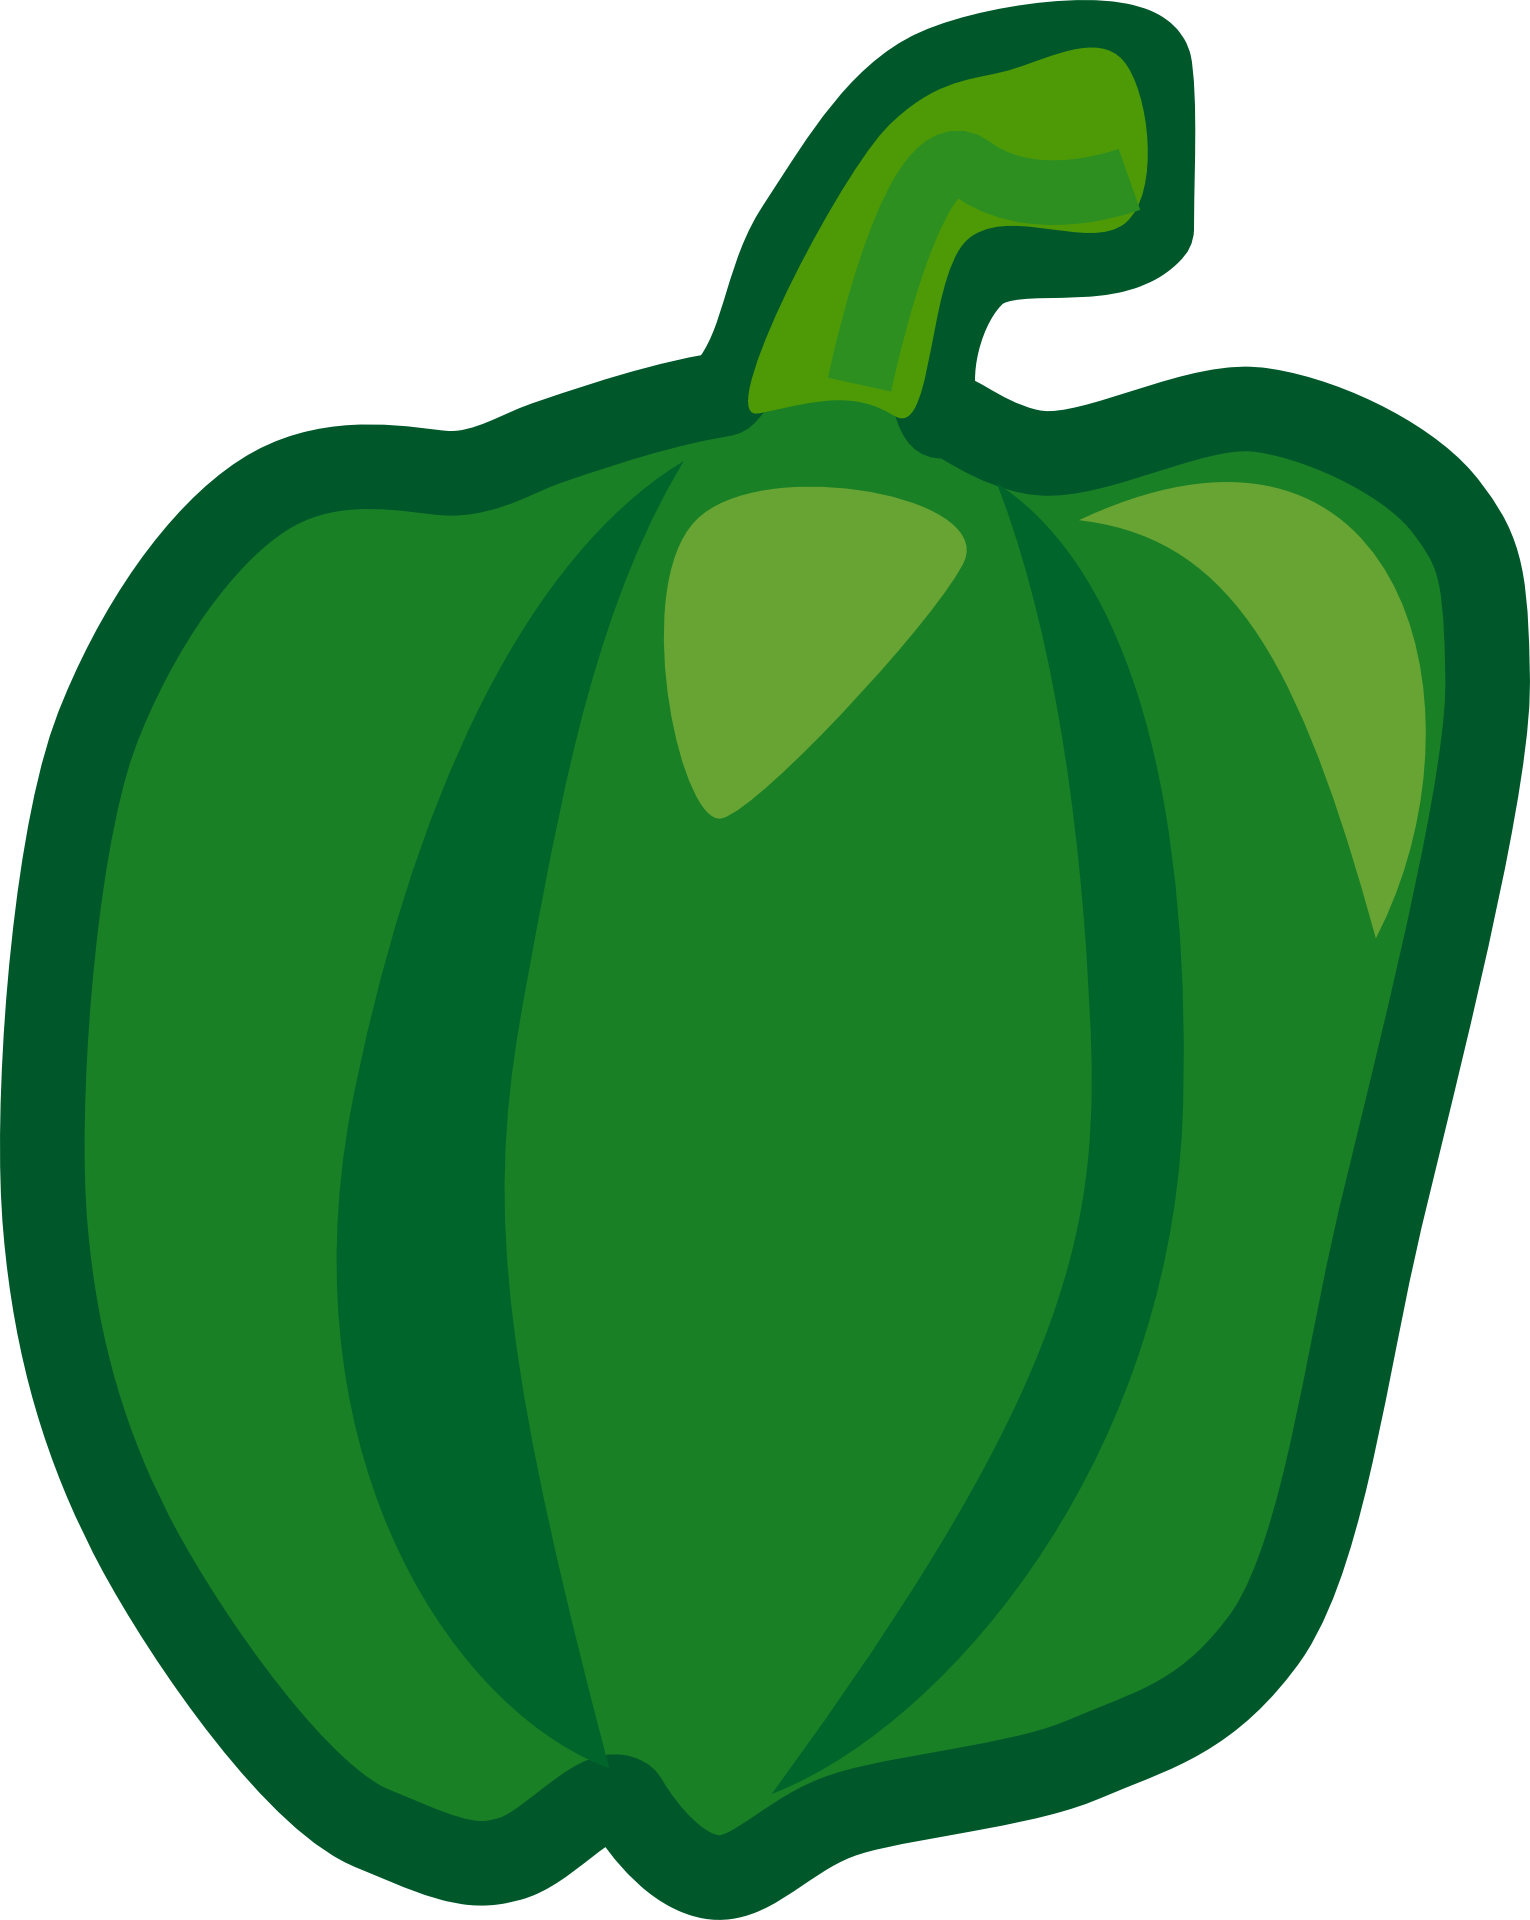 Drawing vegetable easy. Of green pepper free